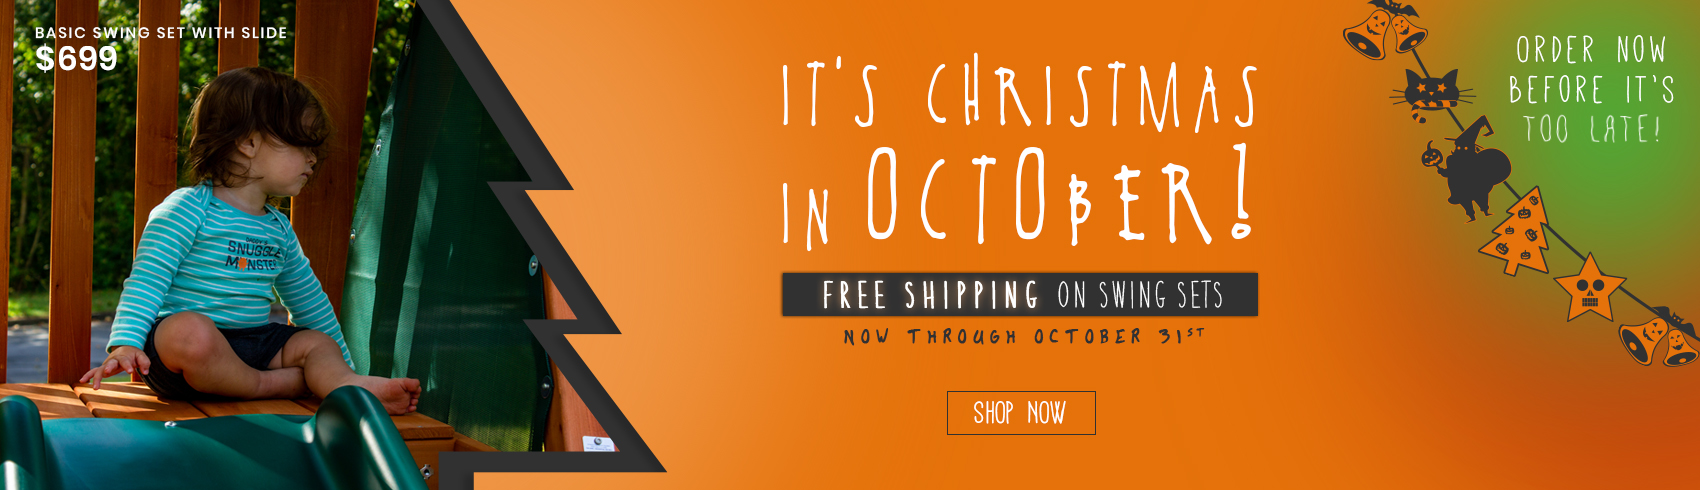 It's the most spookiest time of year with free shipping on all of our swing sets!